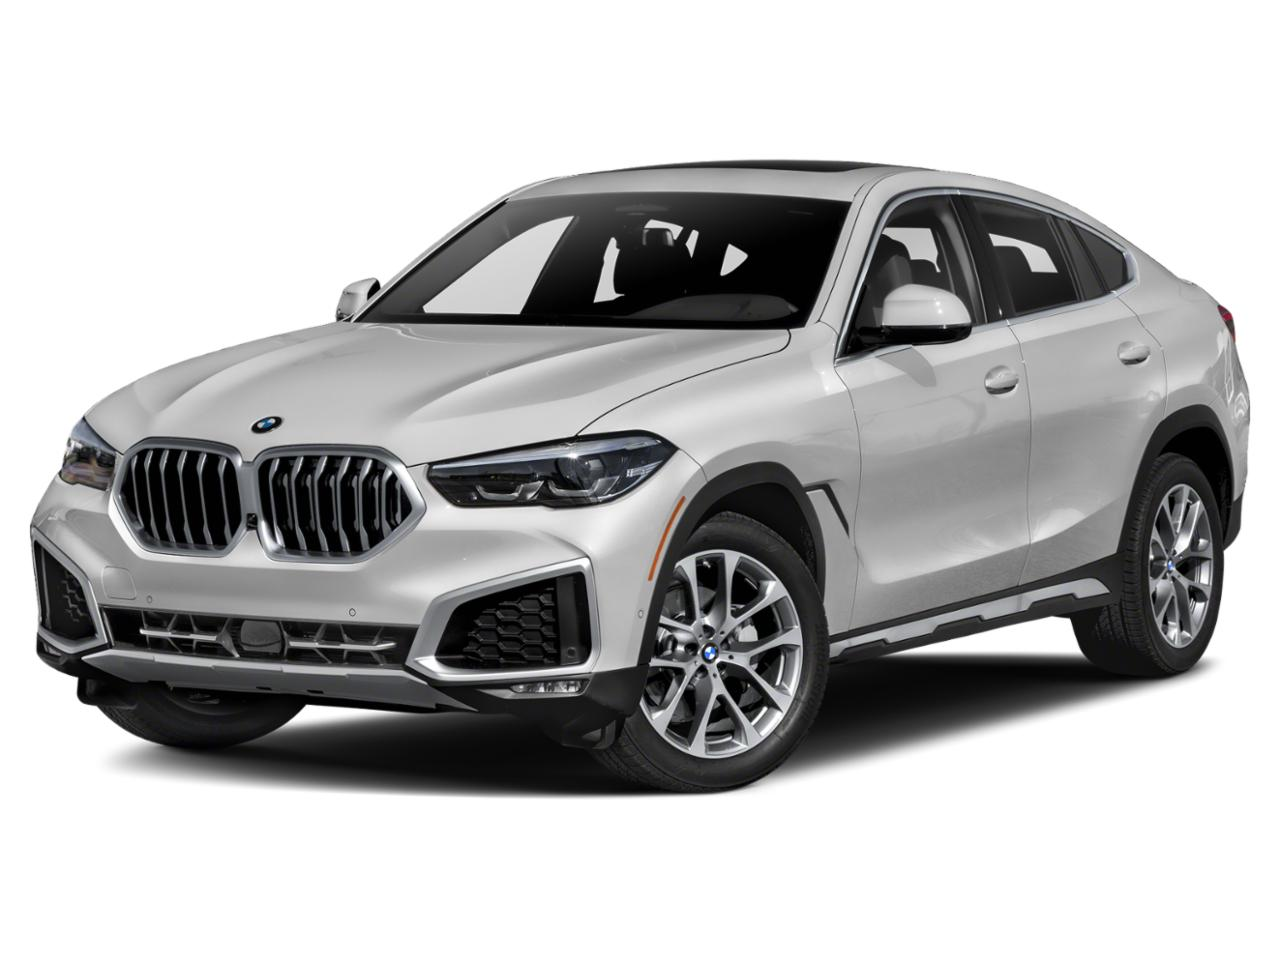 2020 BMW X6 xDrive40i Vehicle Photo in Grapevine, TX 76051